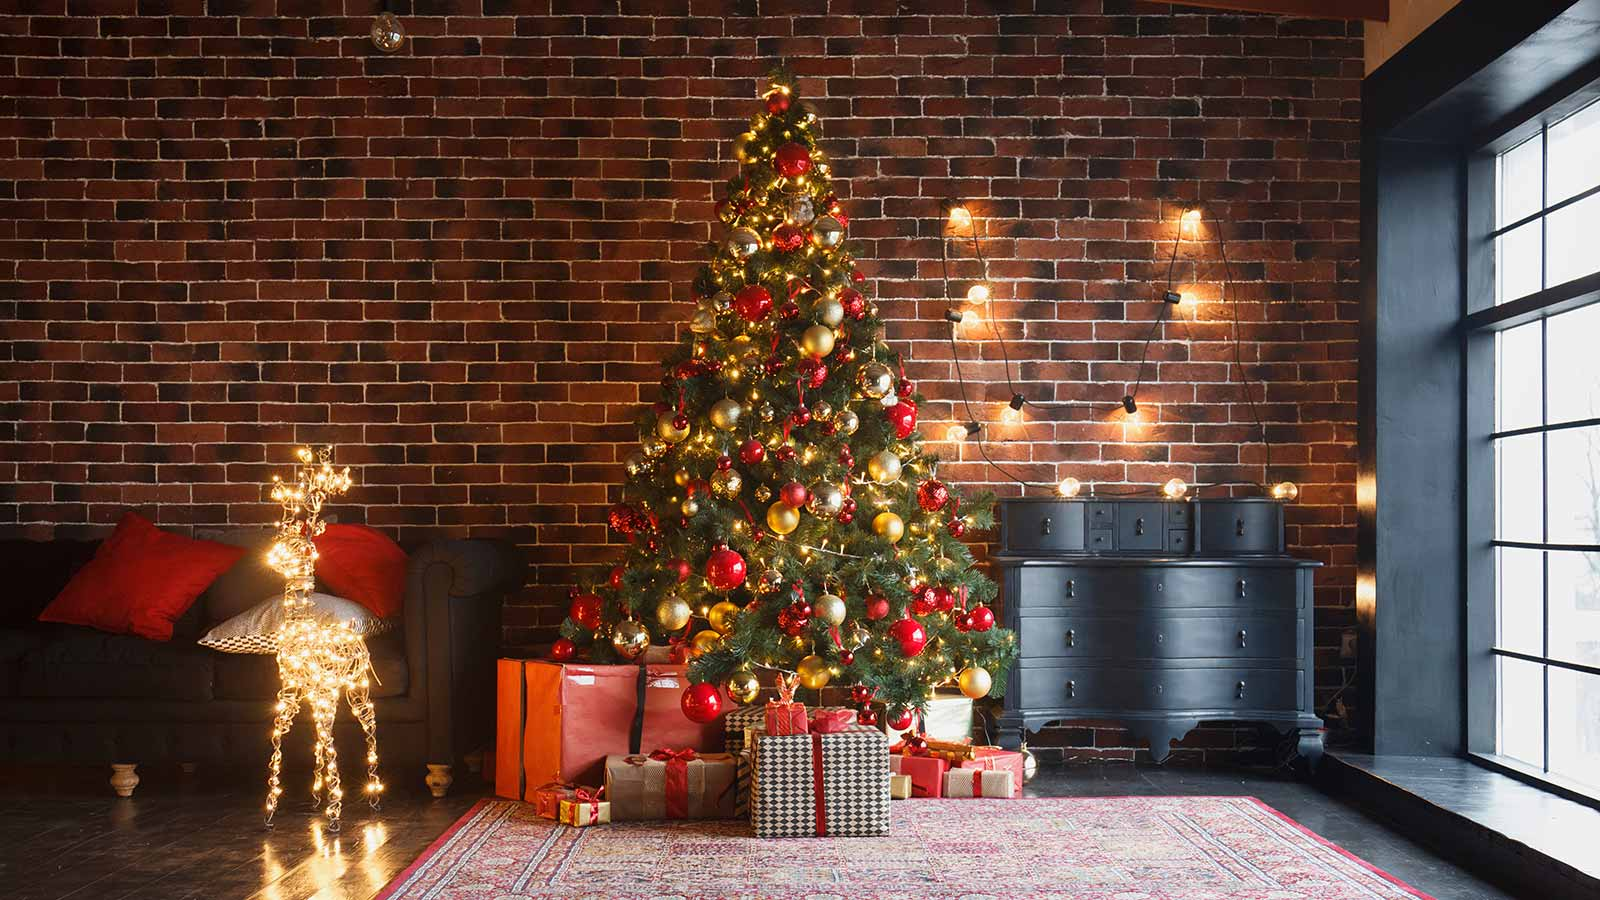 Should You Add Fertilizer Or Bleach To Your Christmas Tree Stand Lifesavvy